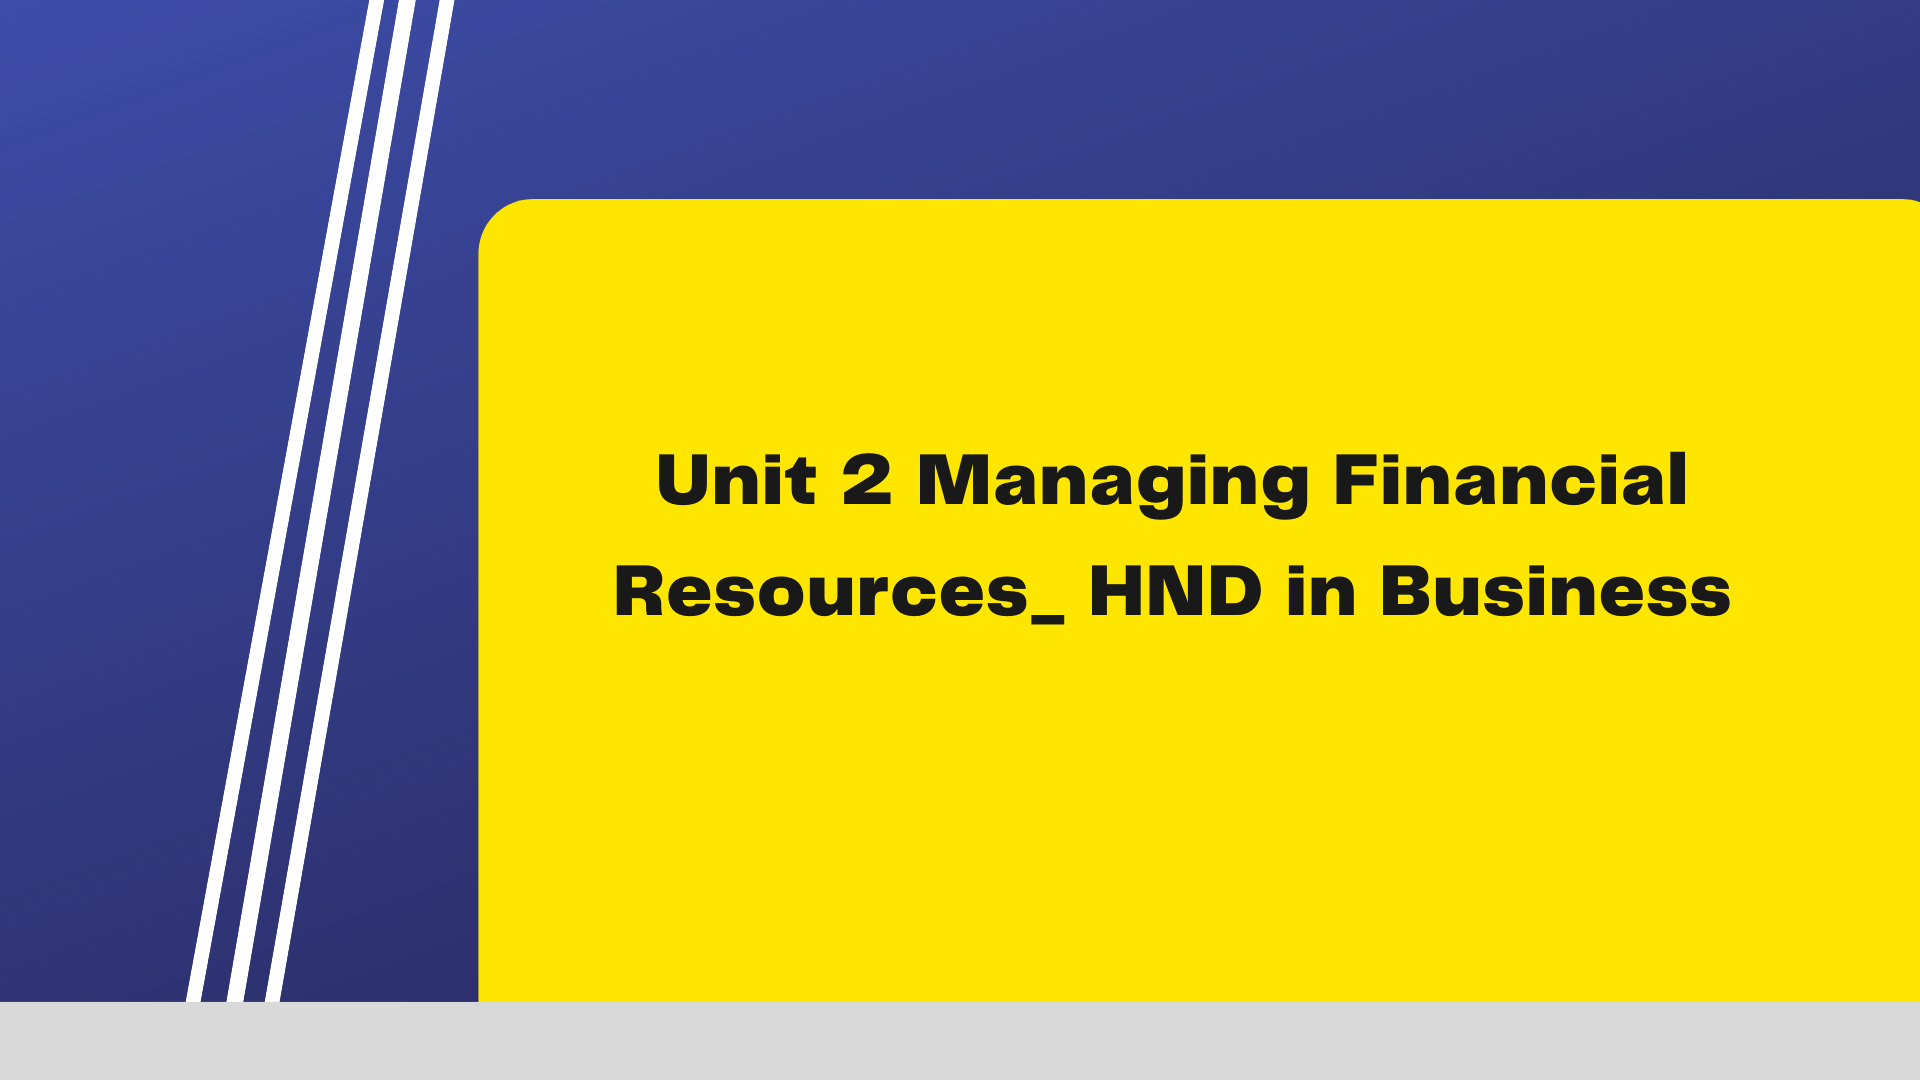 Unit 2 Managing Financial Resources_ HND in Business